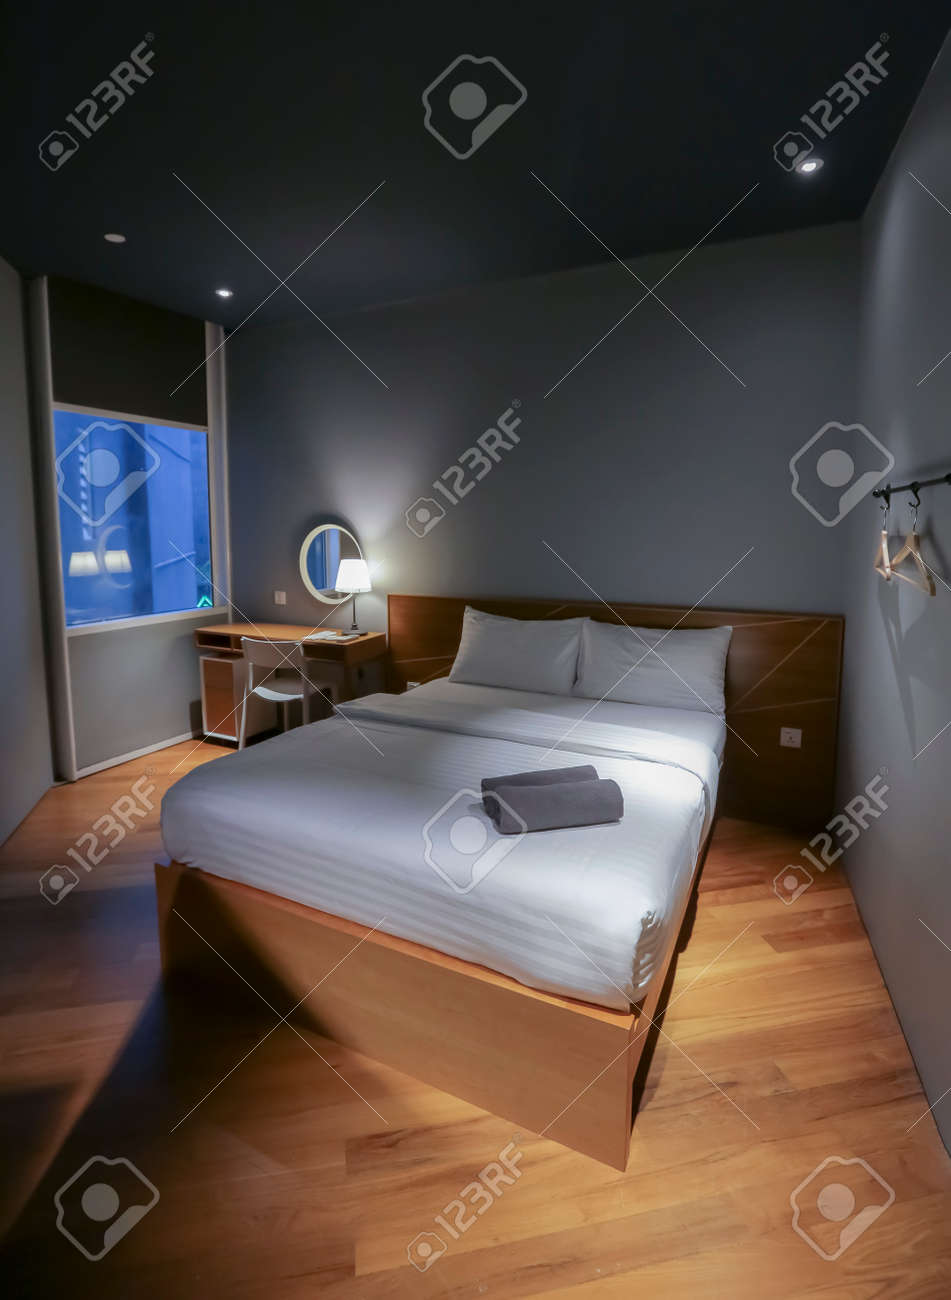 Kuala Lumpur Malaysia October 12 2017 White Pillow On Bed Stock Photo Picture And Royalty Free Image Image 122153753